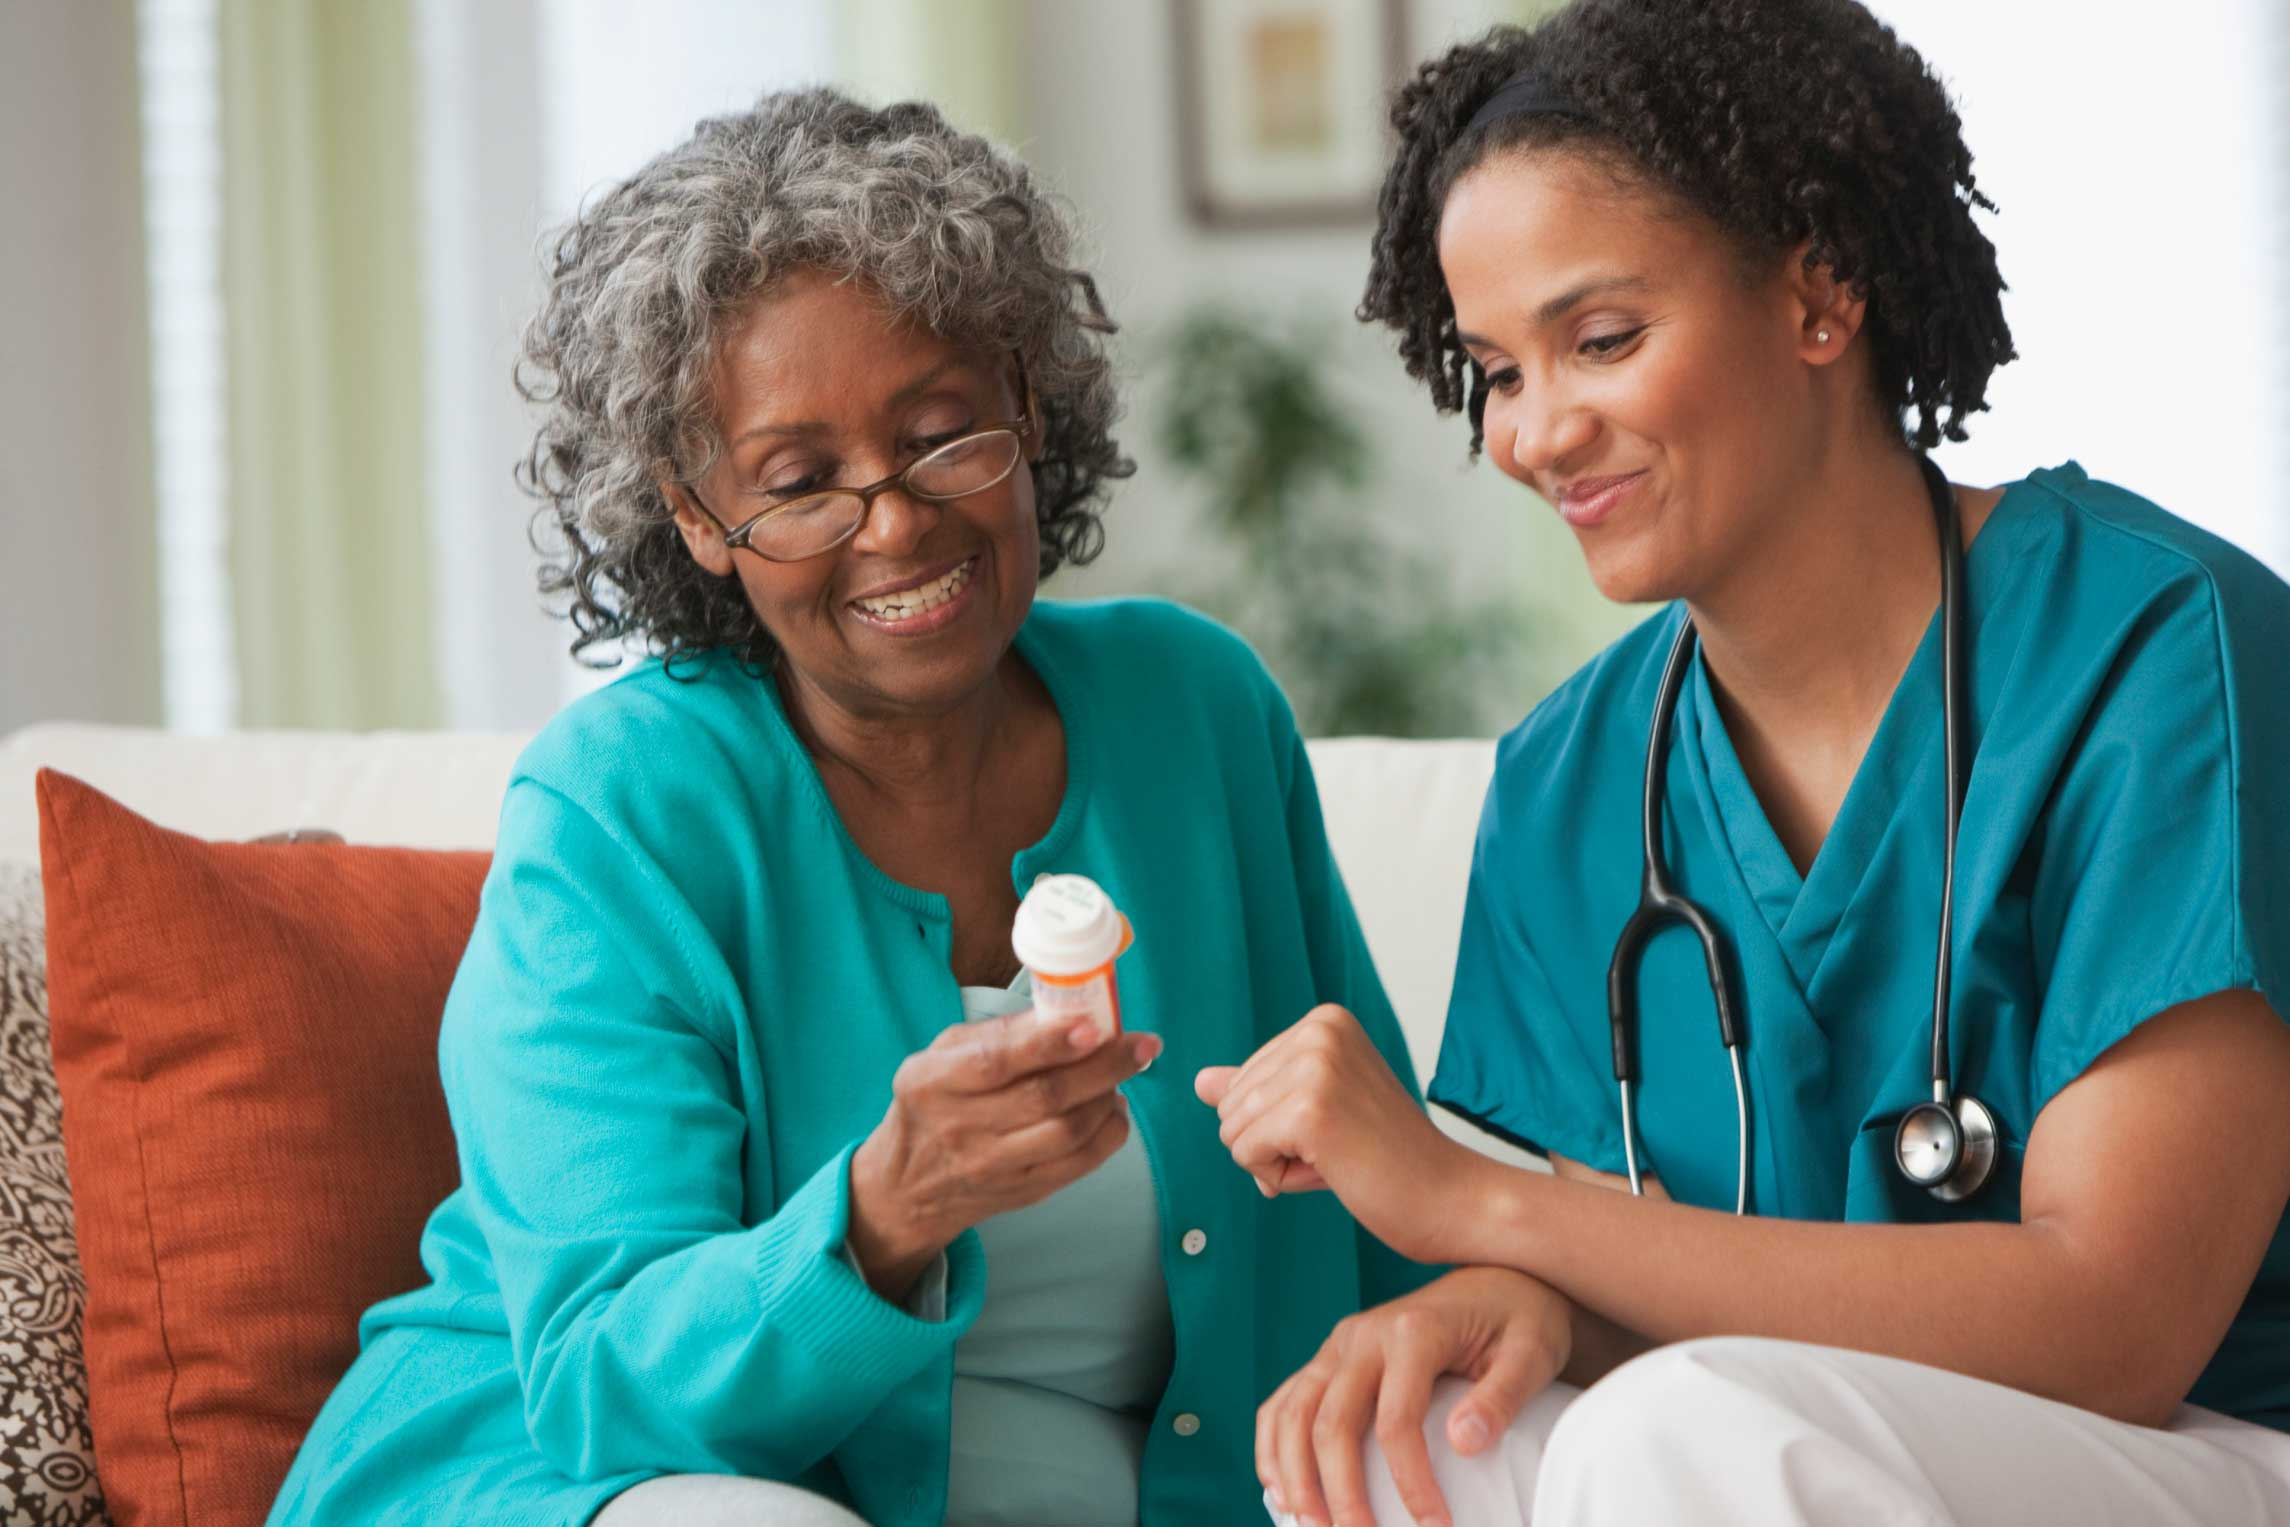 7 Common Types of Home Care Services